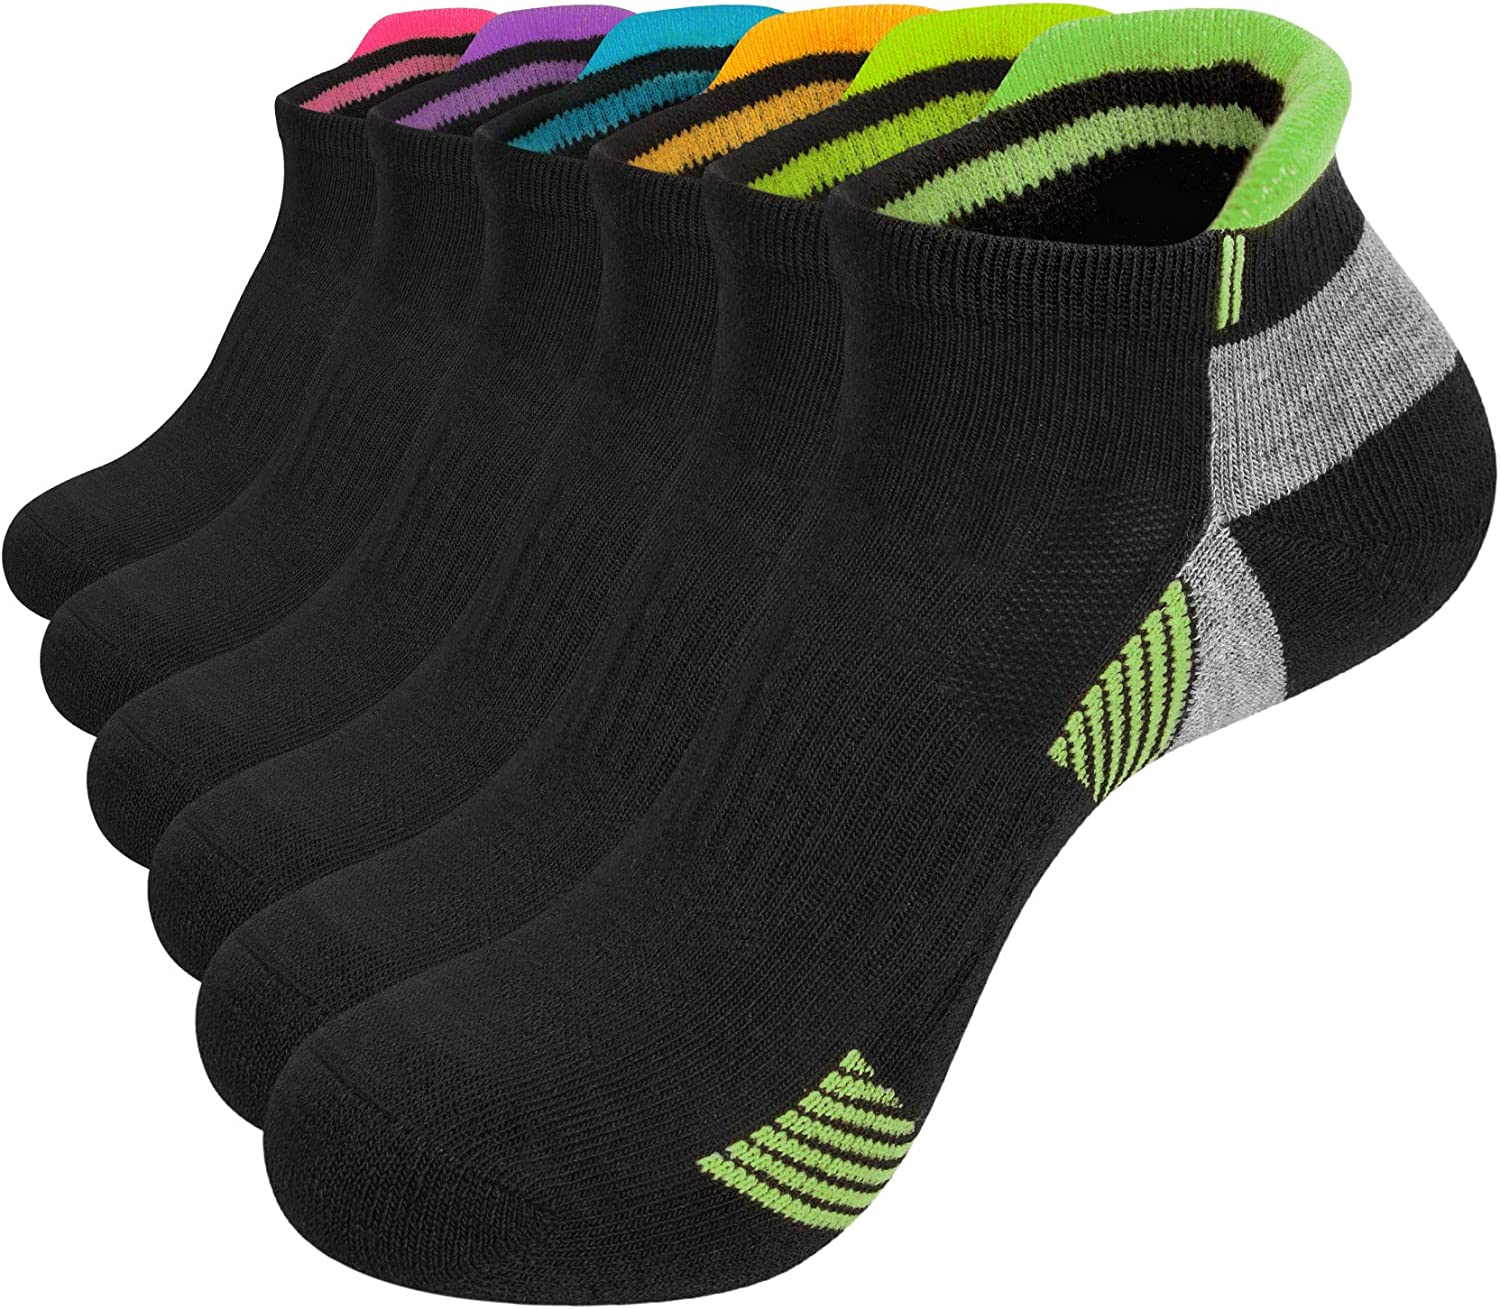 Womens Ankle Socks Low Cut Cushion Mail order Cotton Athletic Sport Workout Max 68% OFF